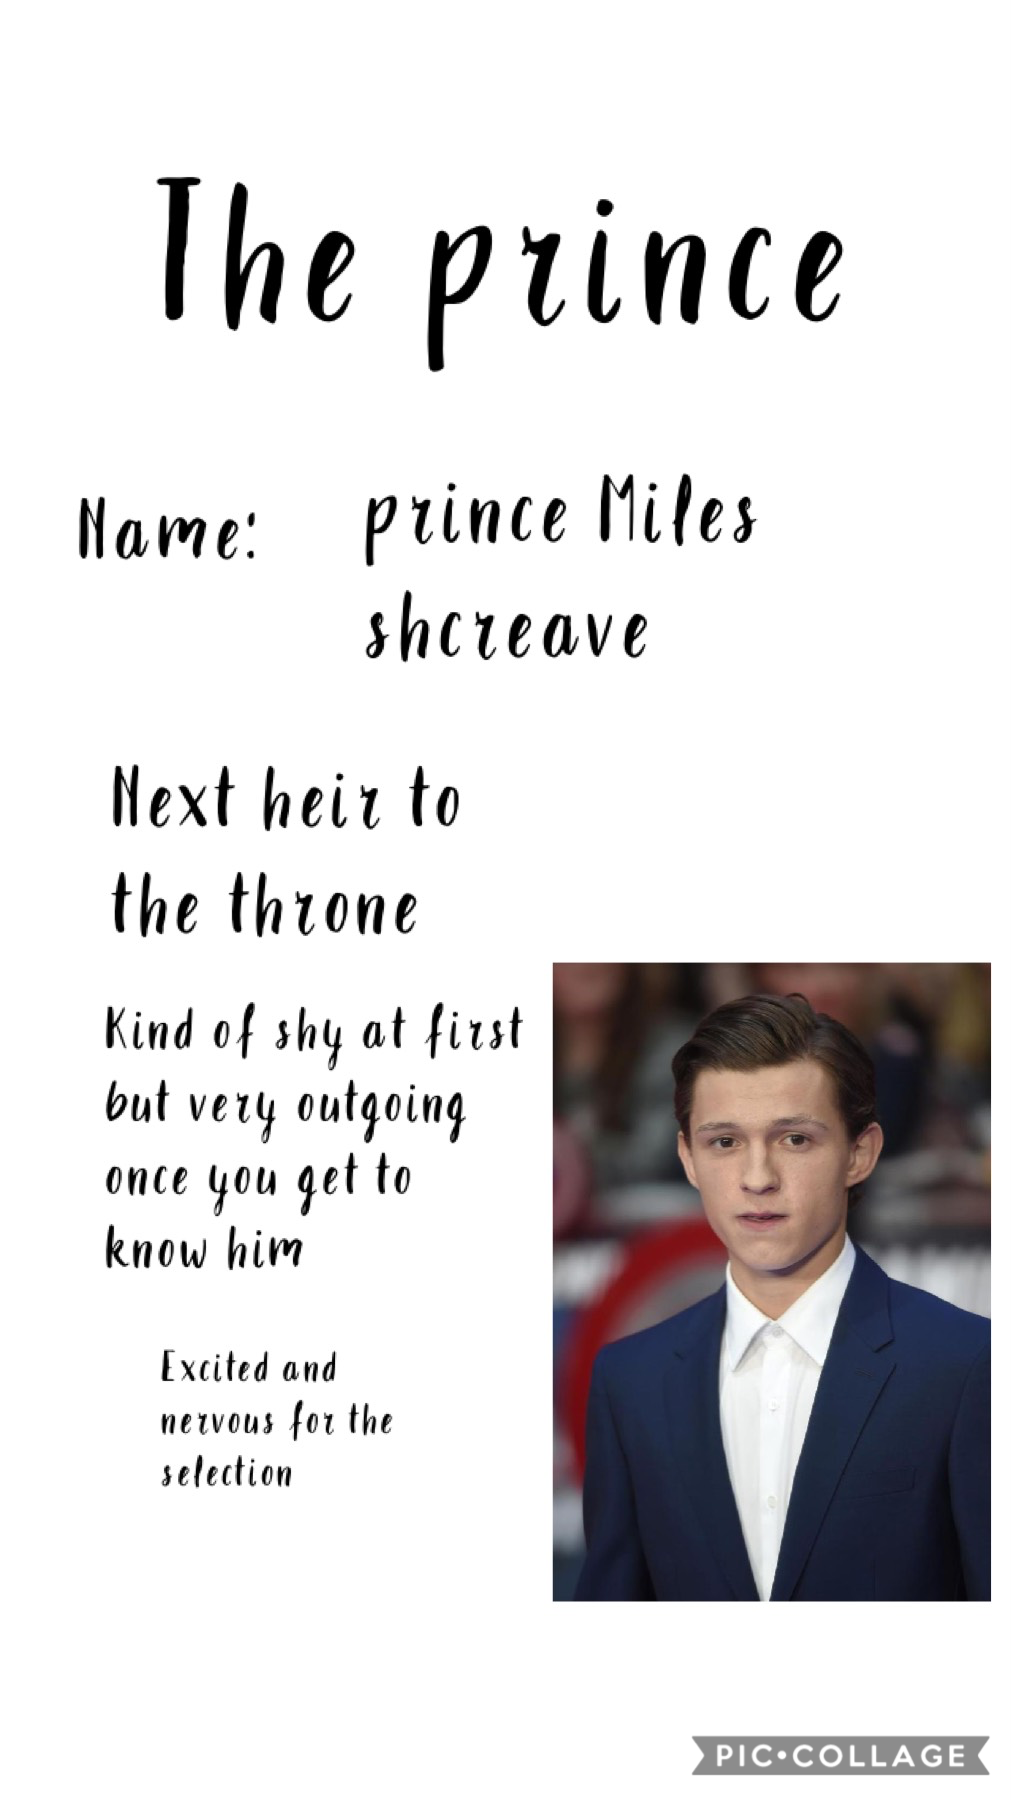 Introducing Prince Miles